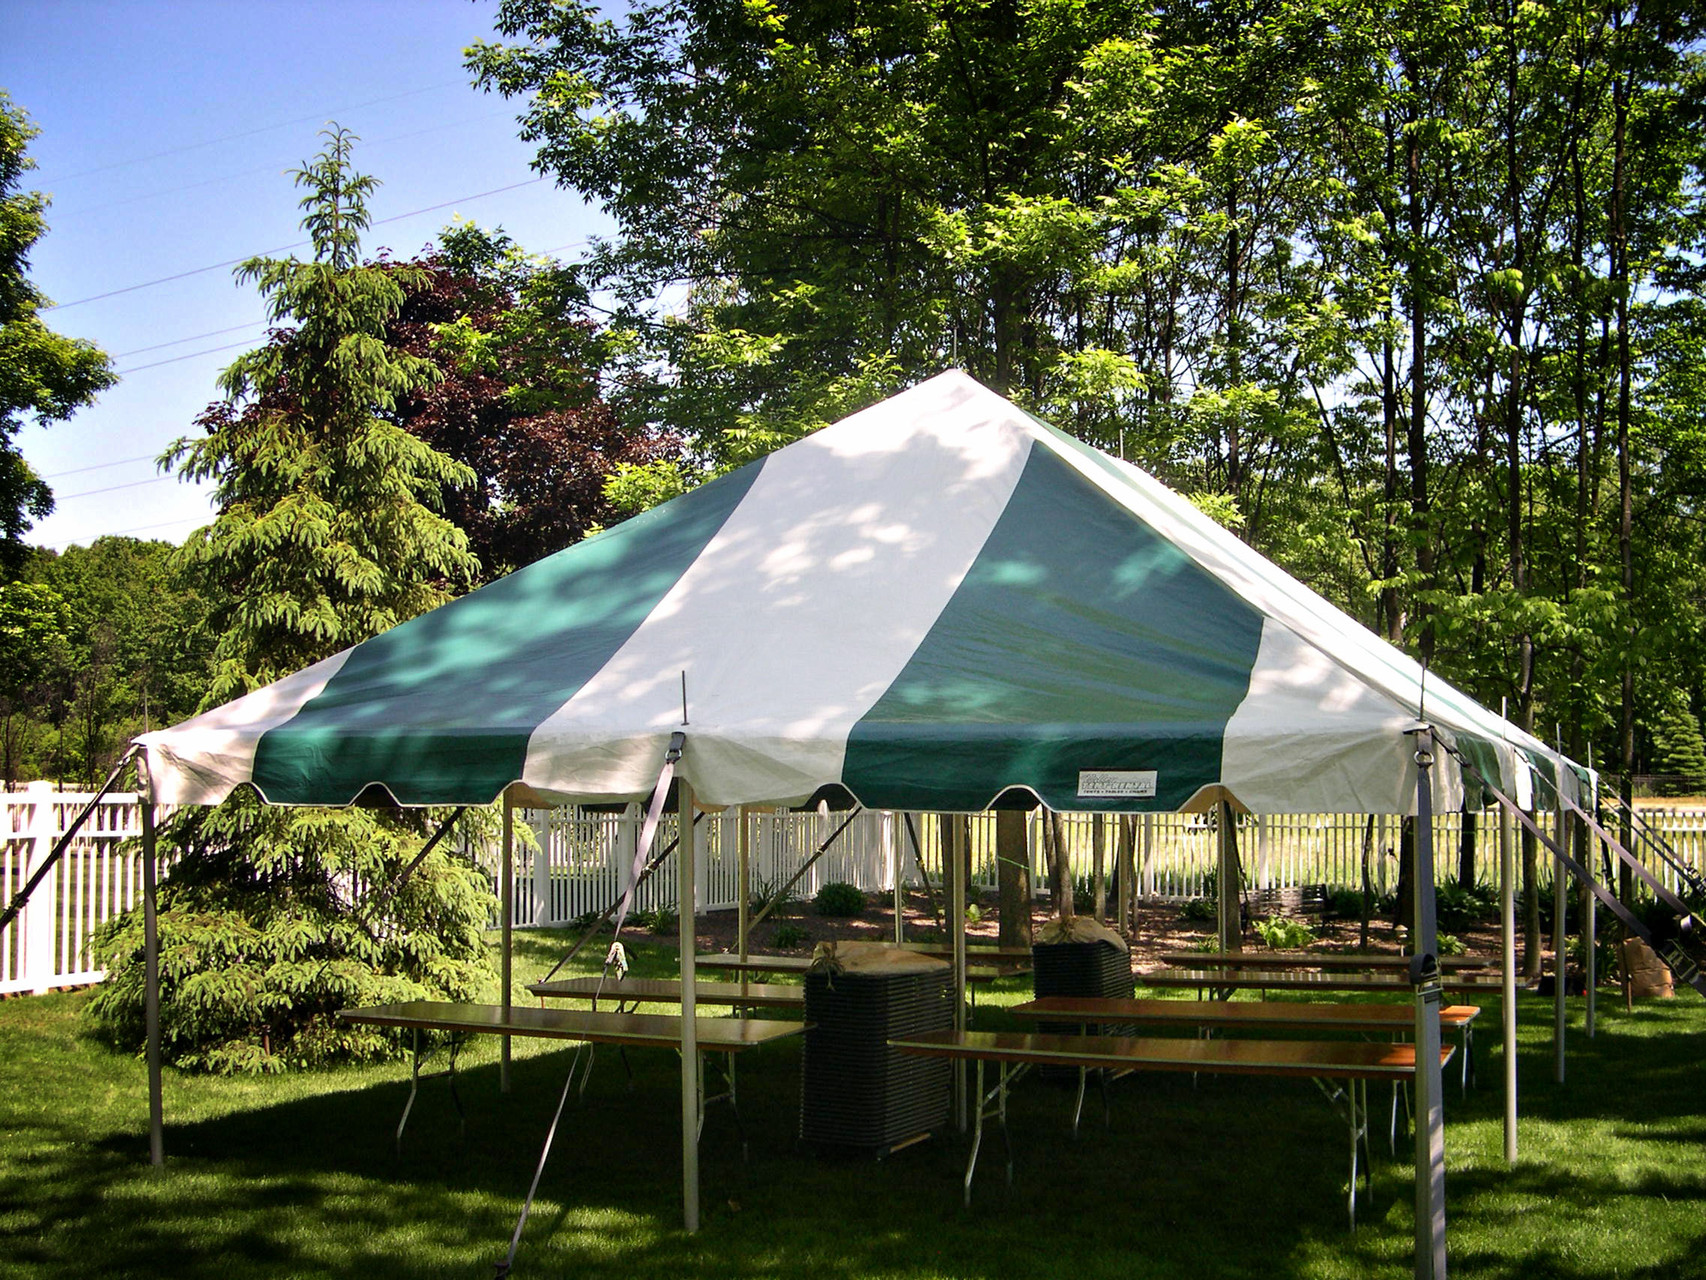 20 x 30 Pole tent with 8 tables and 64 chairs